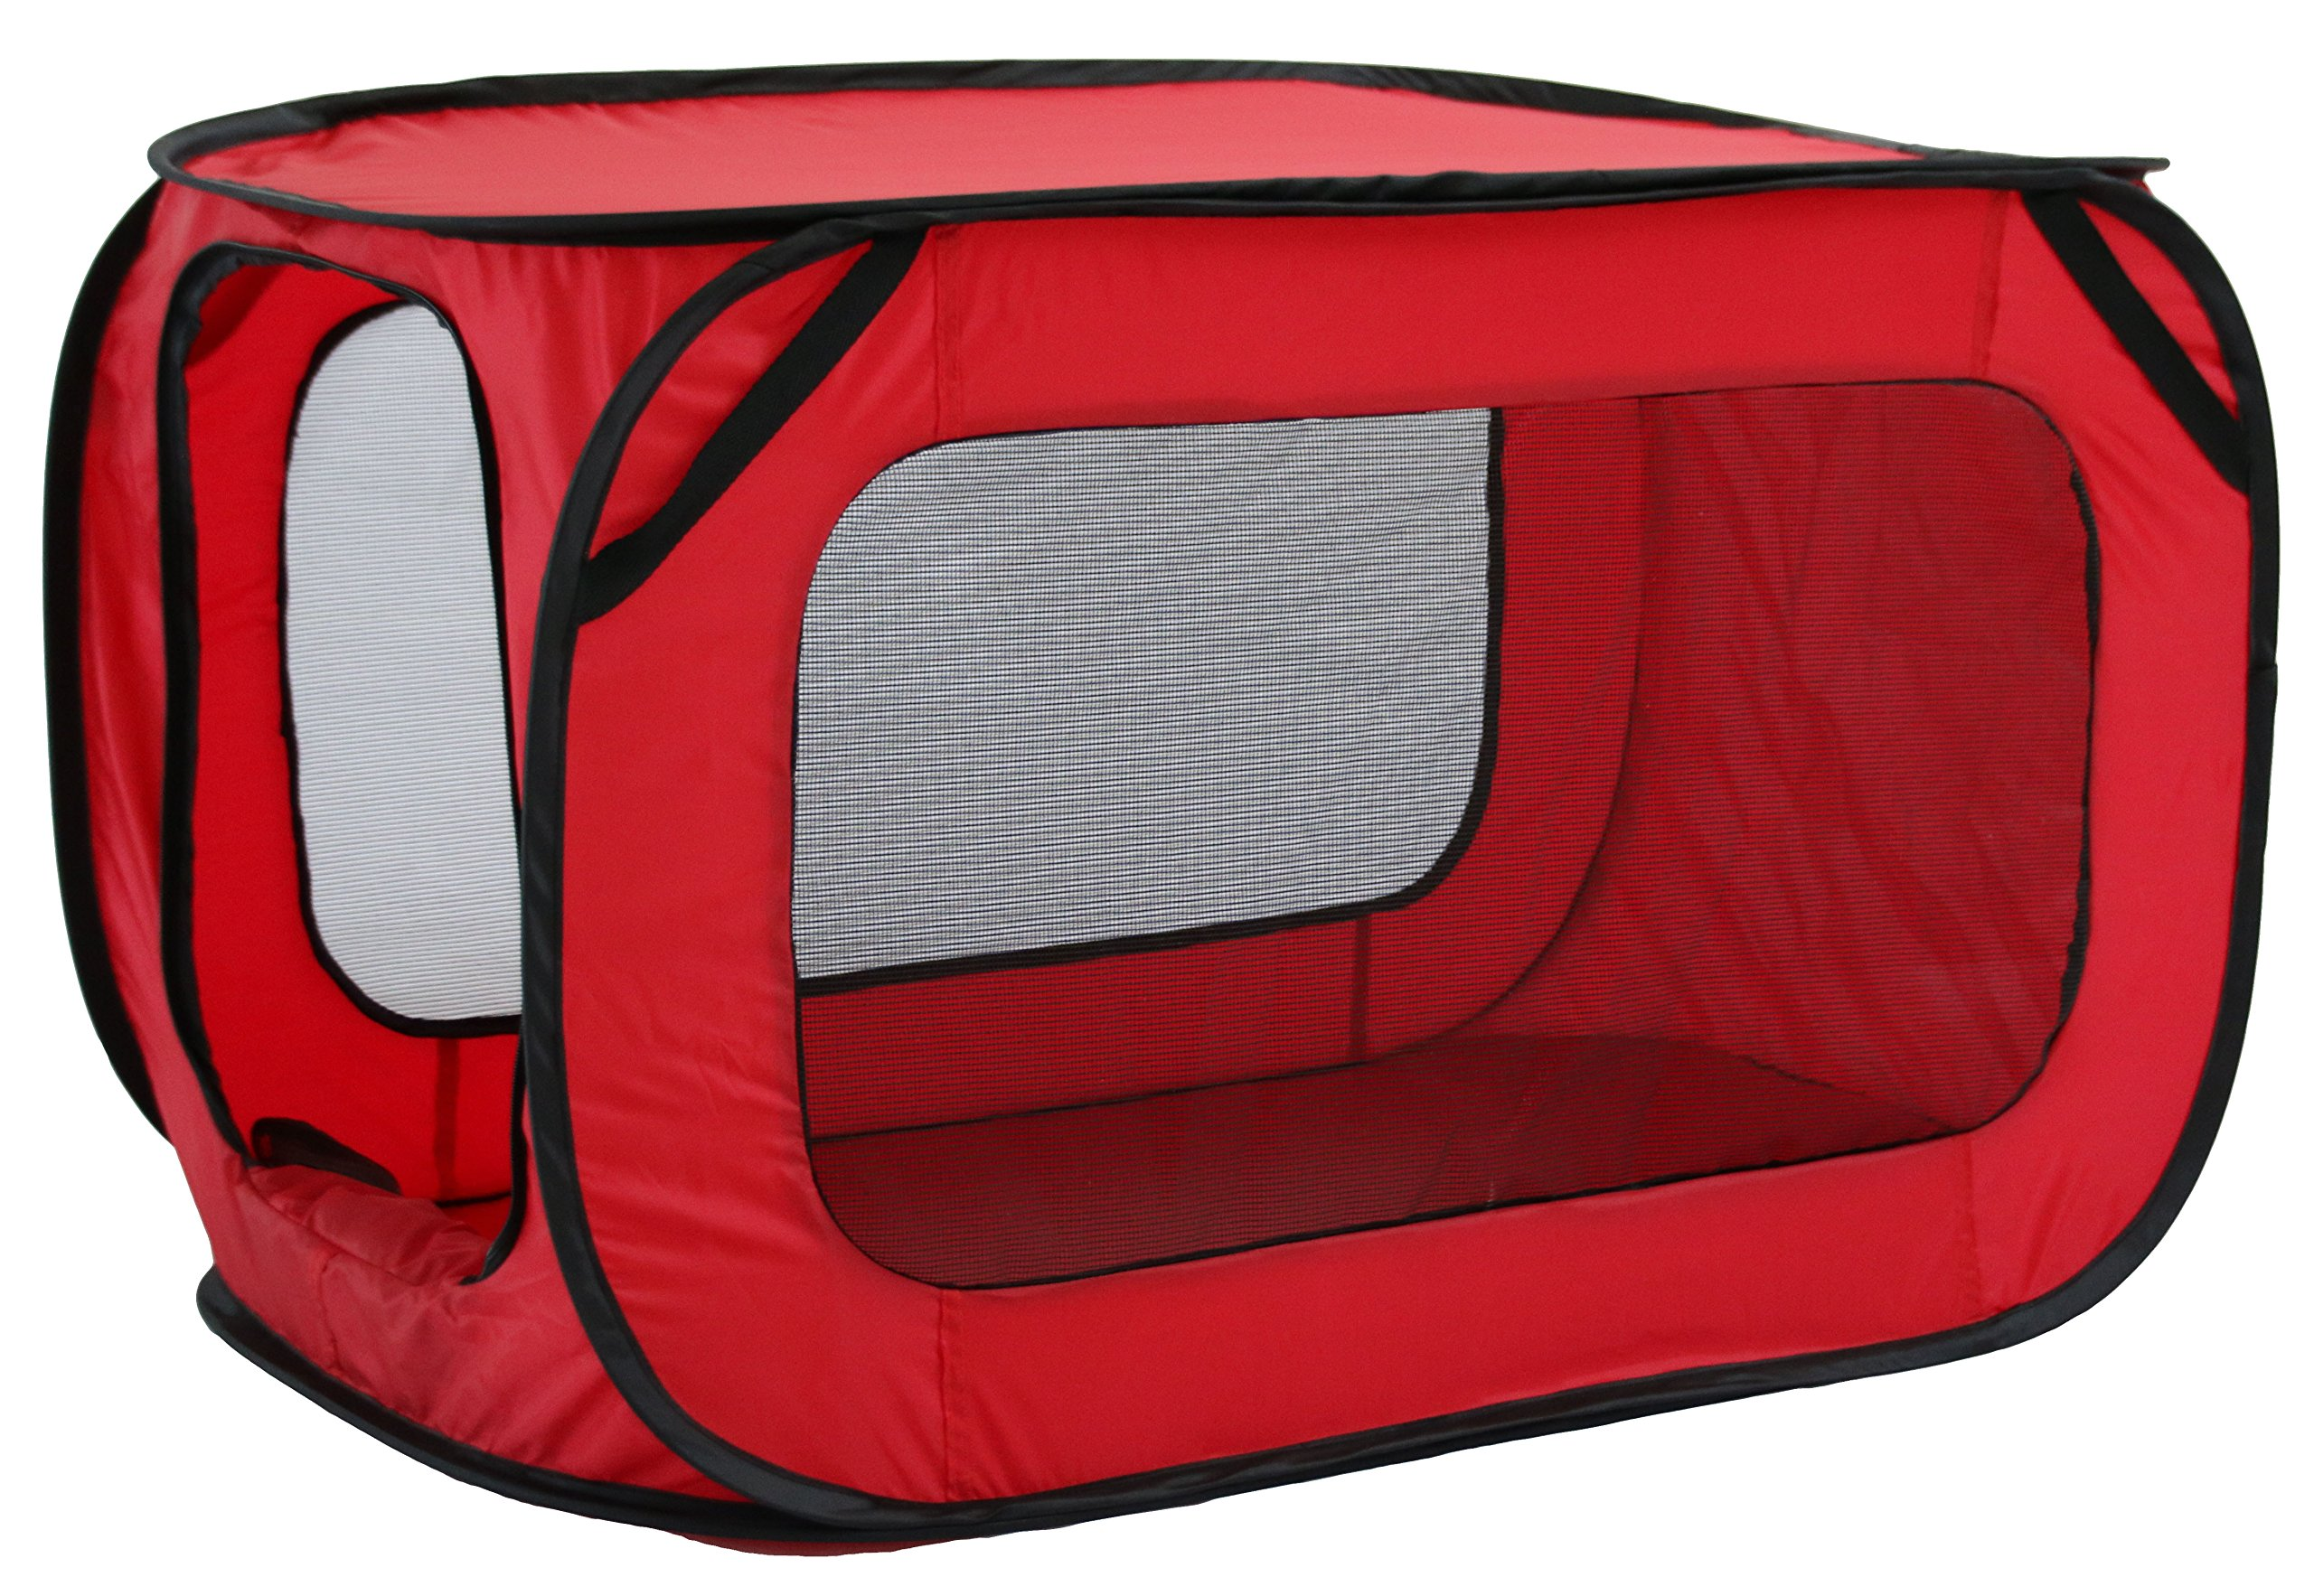 PET LIFE 'Elongated Camping' Rectangular Mesh Wire-Folding Collapsible Travel Lightweight Pet Dog Crate Tent w/ Built-in Bottle Holder, One Size, Red